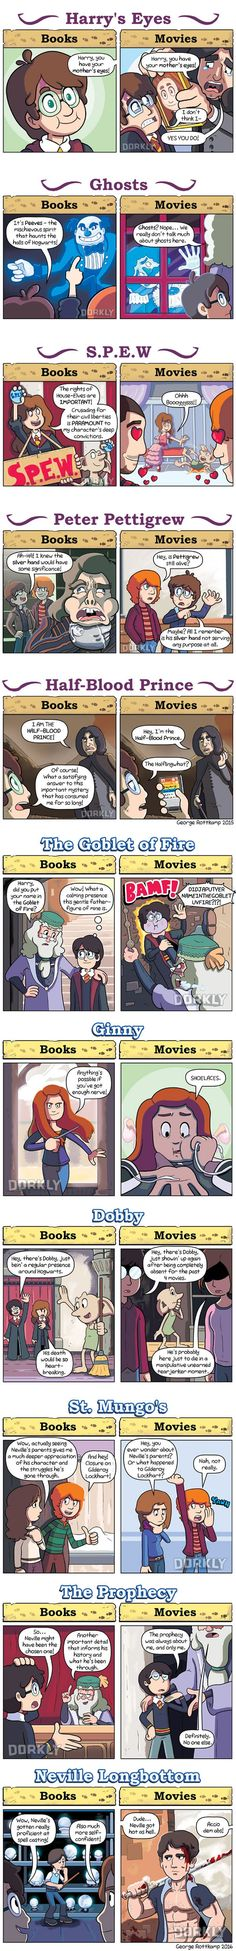 Books vs. Movies